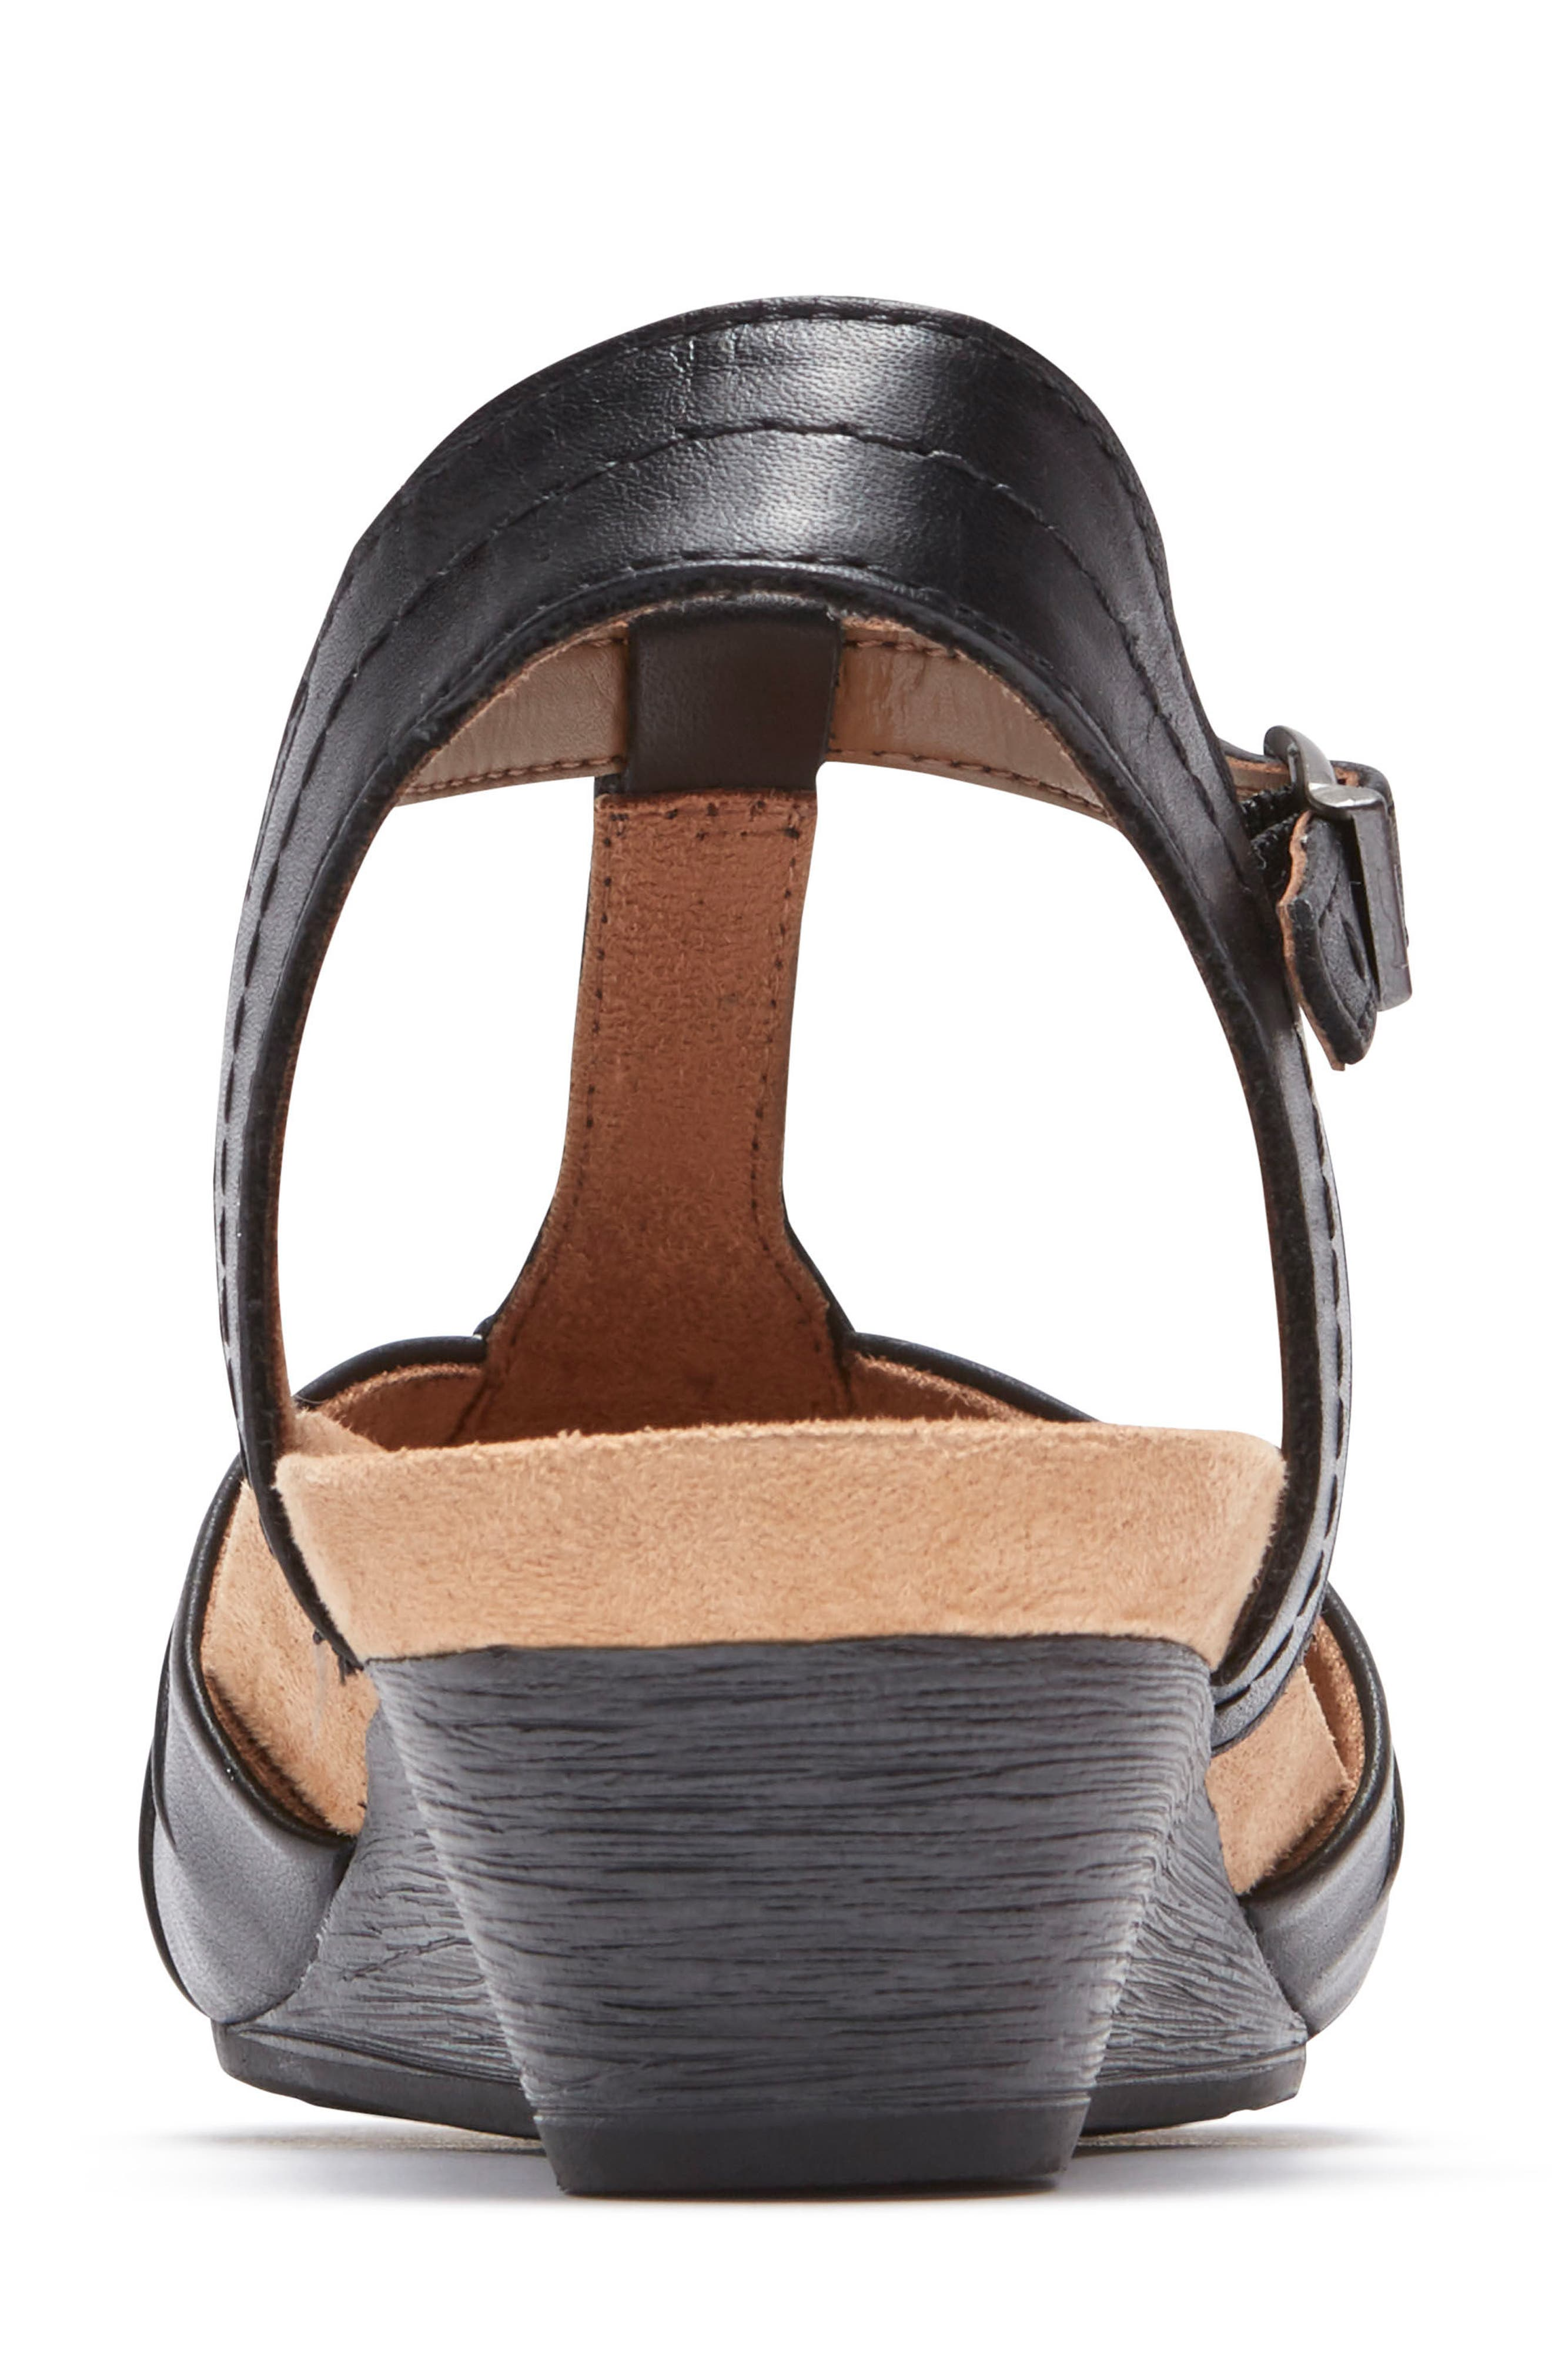 Hollywood Pleat Wedge Sandal,                             Alternate thumbnail 7, color,                             Black Leather